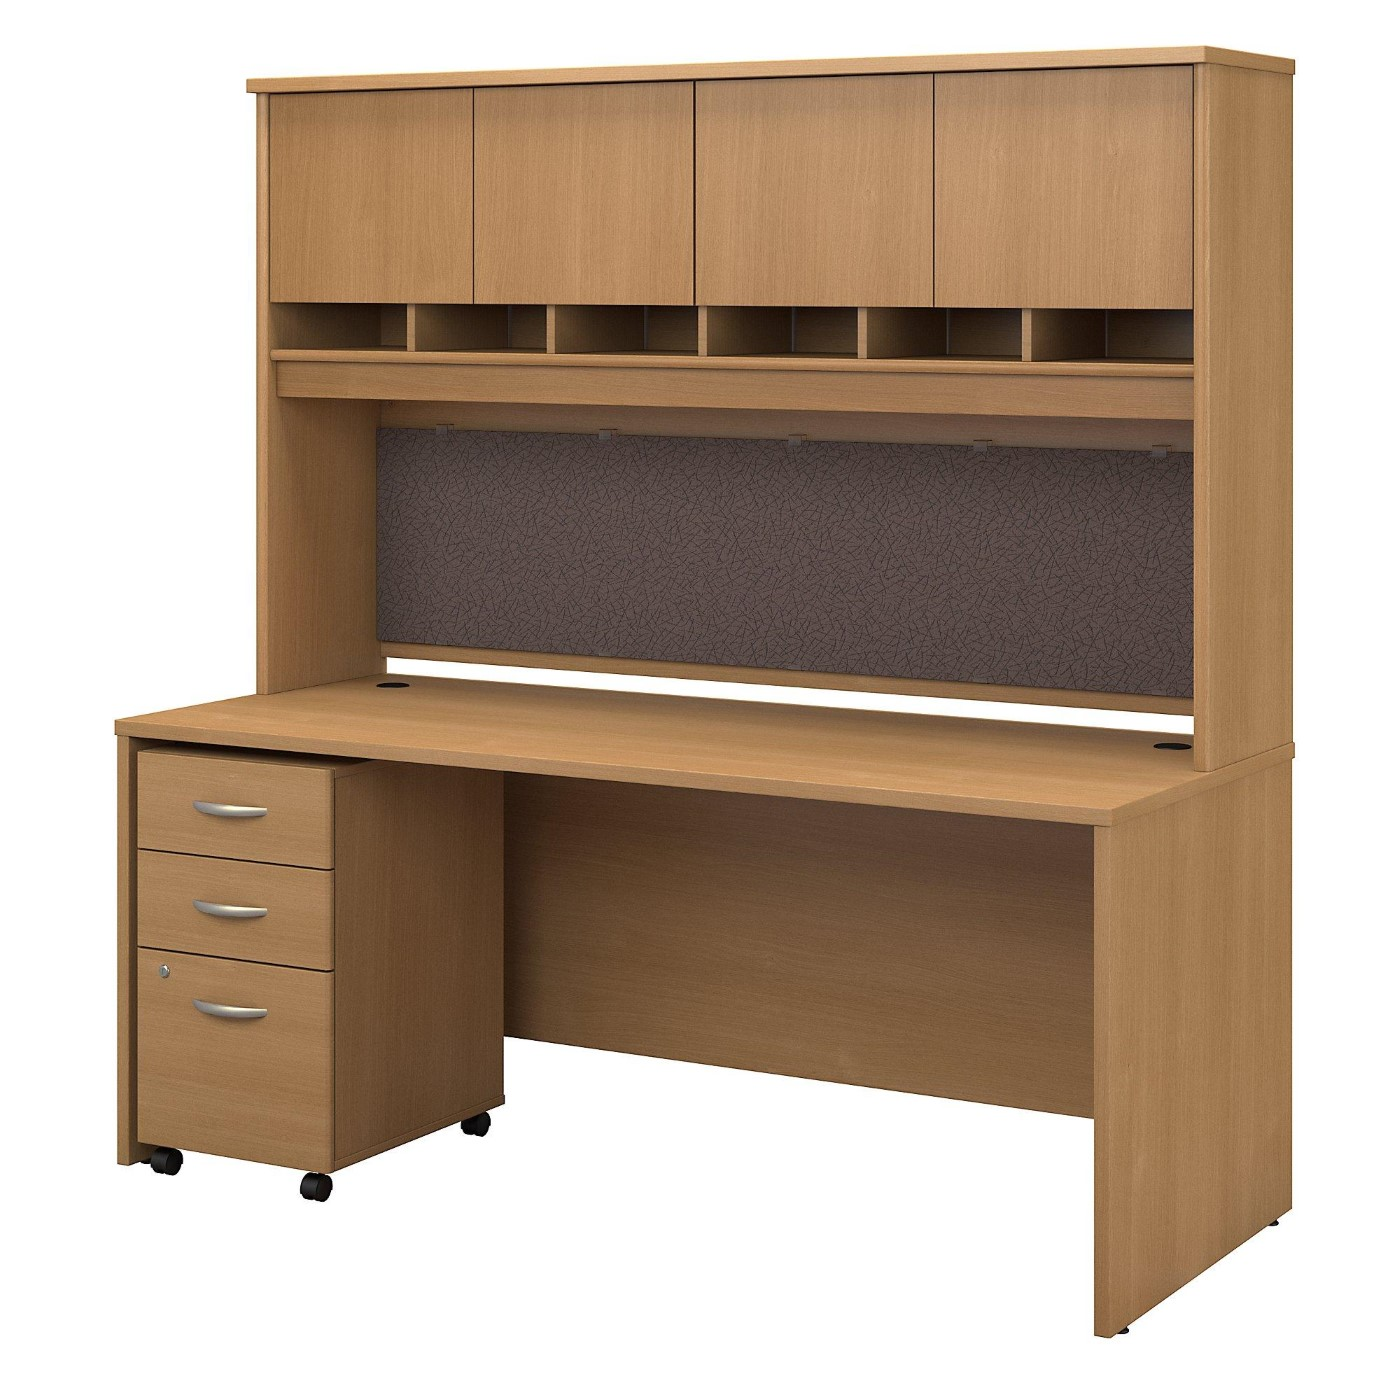 <font color=#c60><b>BUSH BUSINESS FURNITURE SERIES C 72W X 30D OFFICE DESK WITH HUTCH AND MOBILE FILE CABINET. FREE SHIPPING</font></b></font>